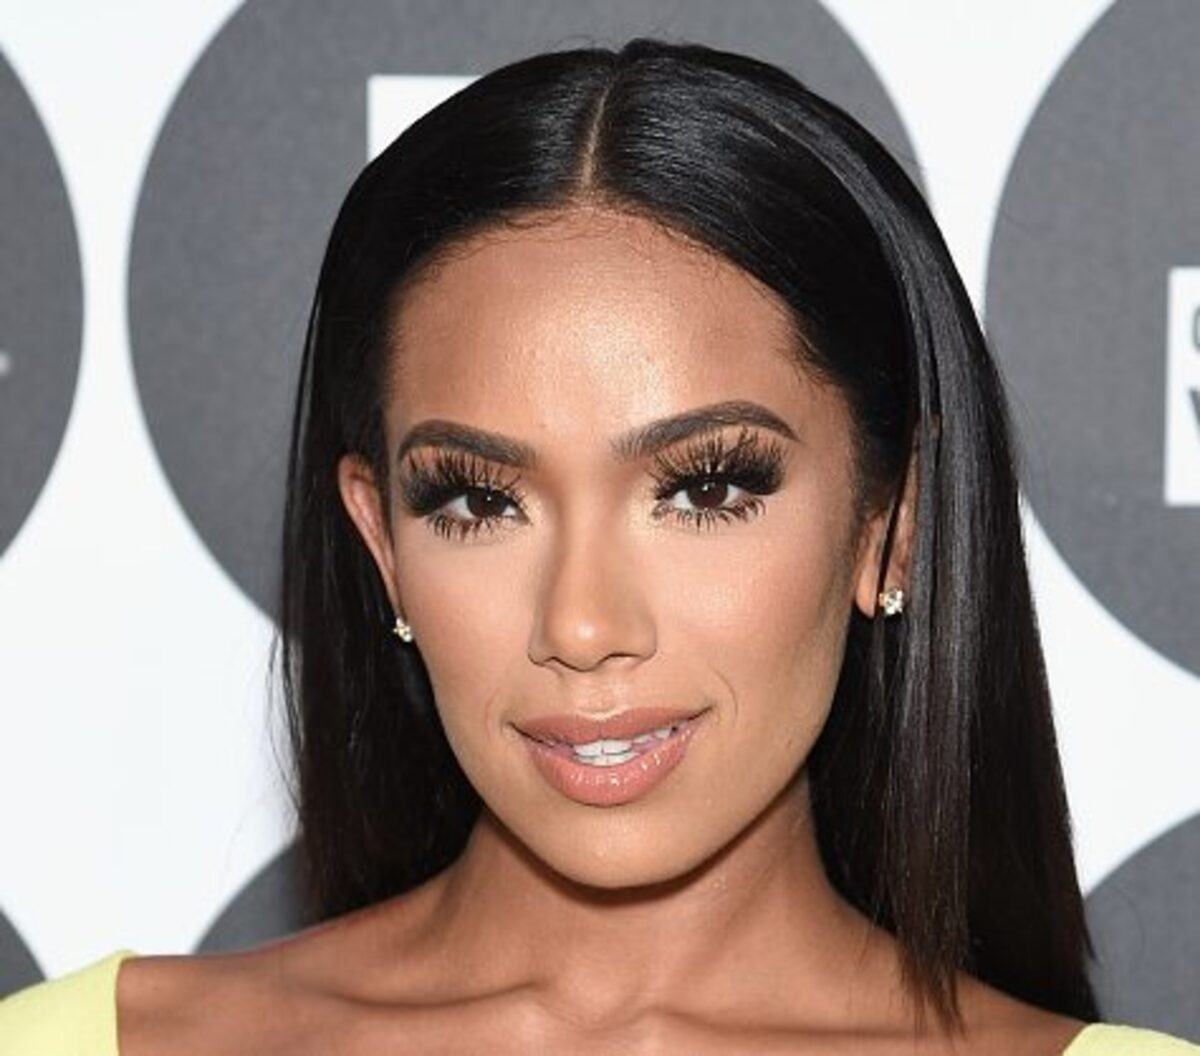 Erica Mena Flaunts Her Curvy Body On The 'Gram – Check Out Her Post